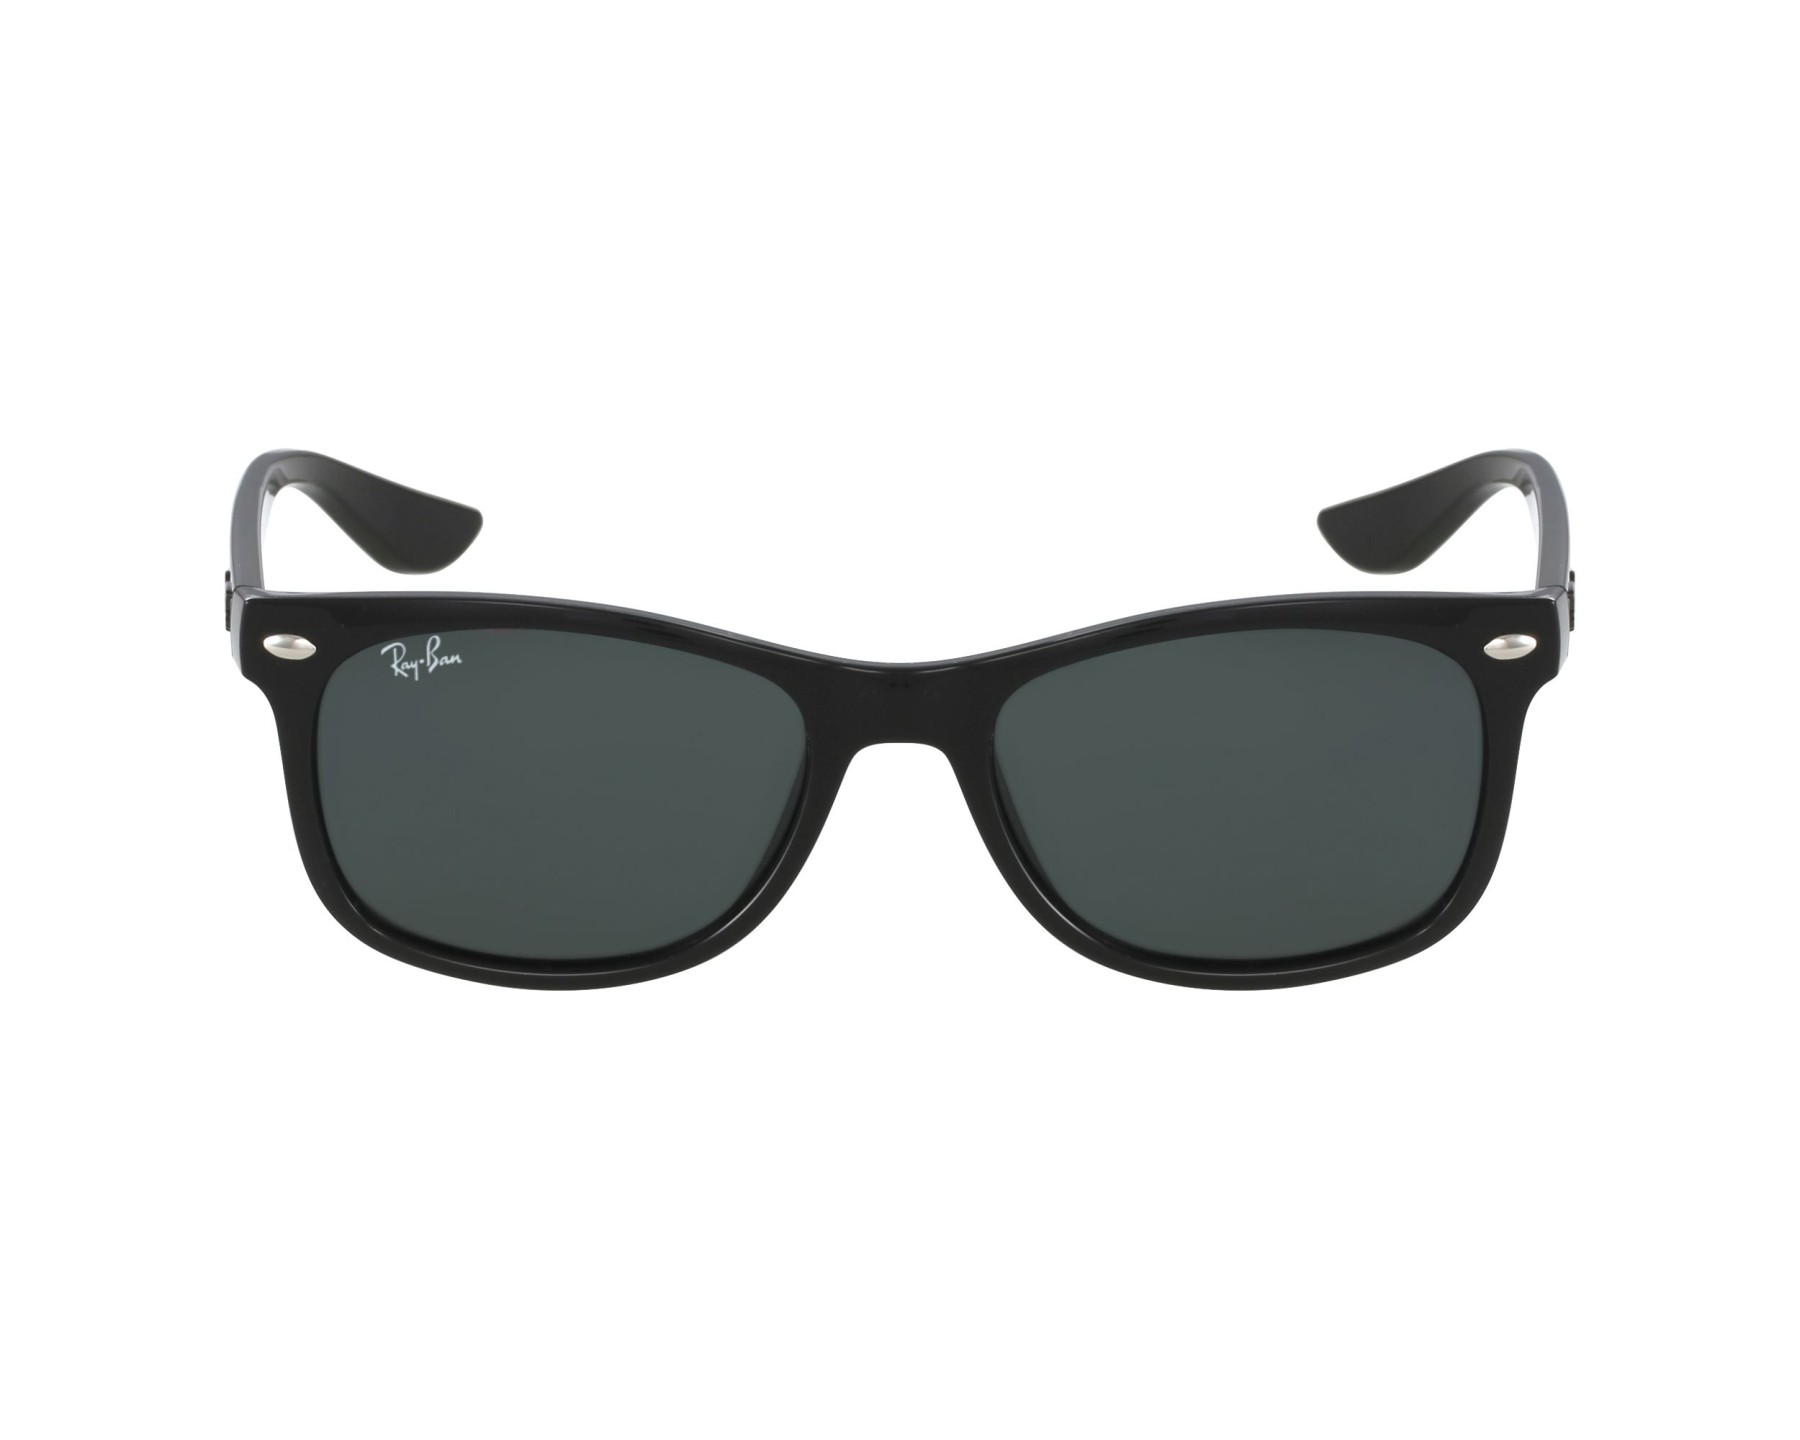 de3911d64 Sunglasses Ray-Ban RJ-9052-S 100/71 - Black profile view